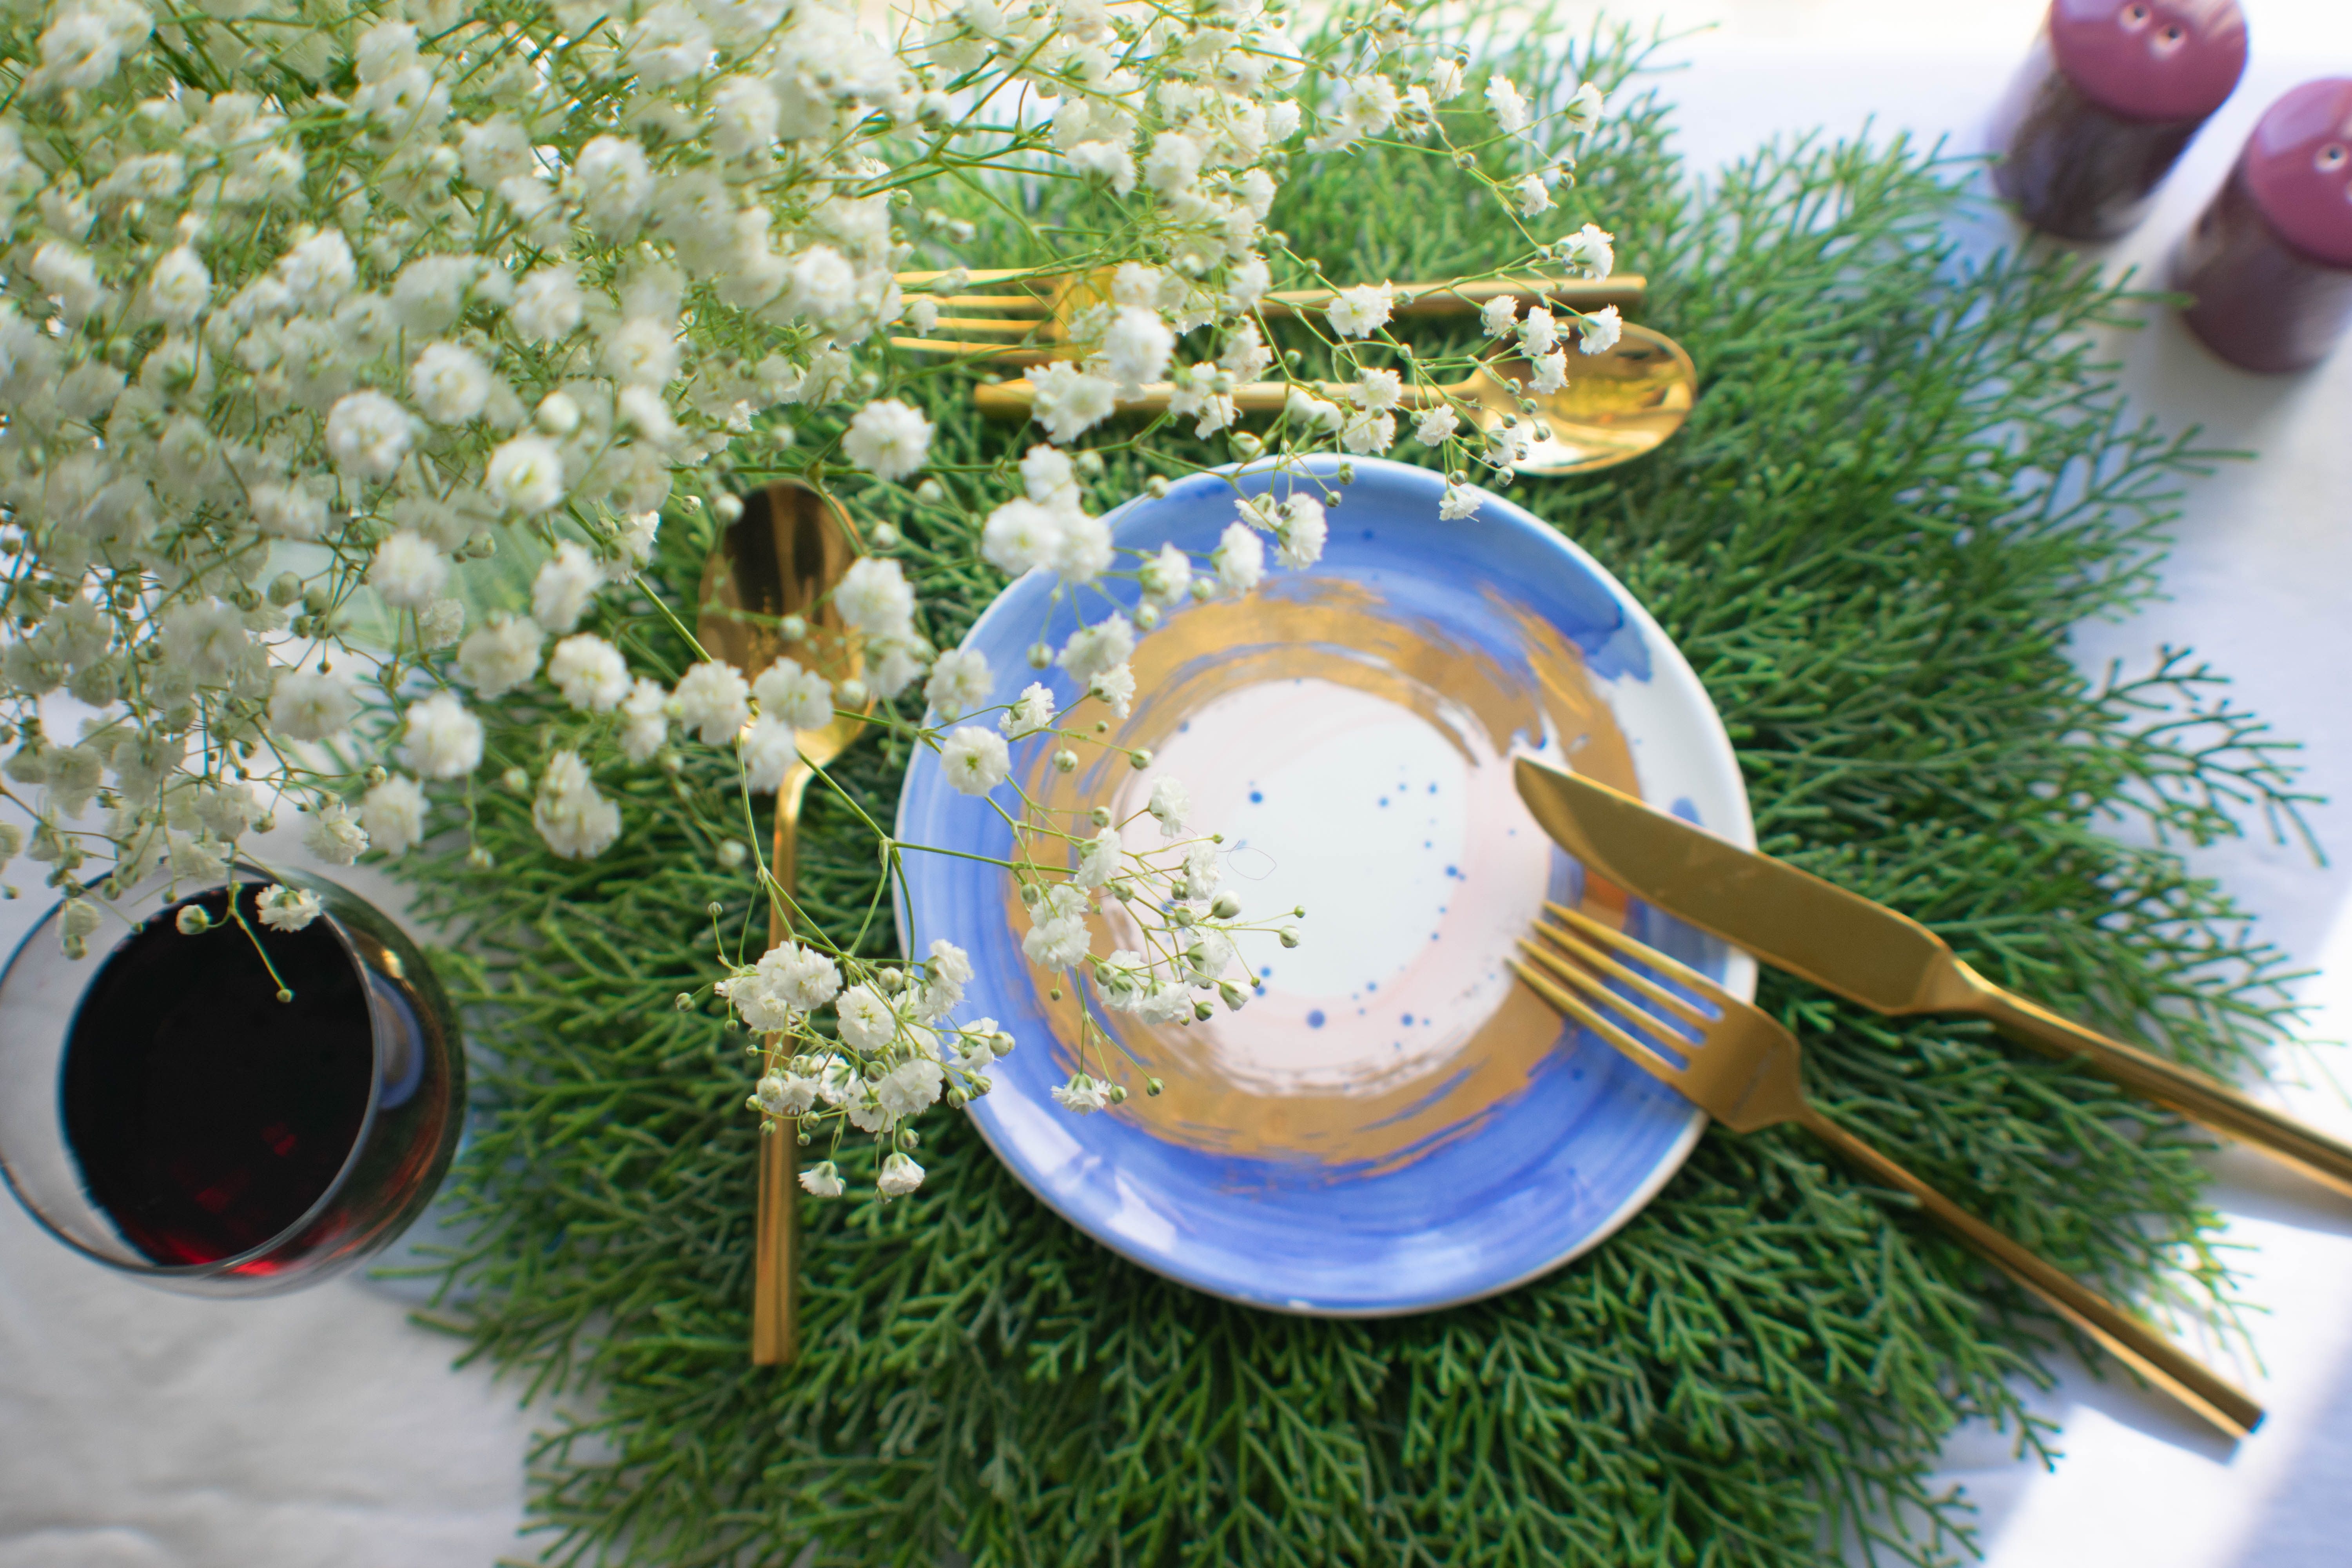 Dress Up Your Table With These Spring Inspired Plates